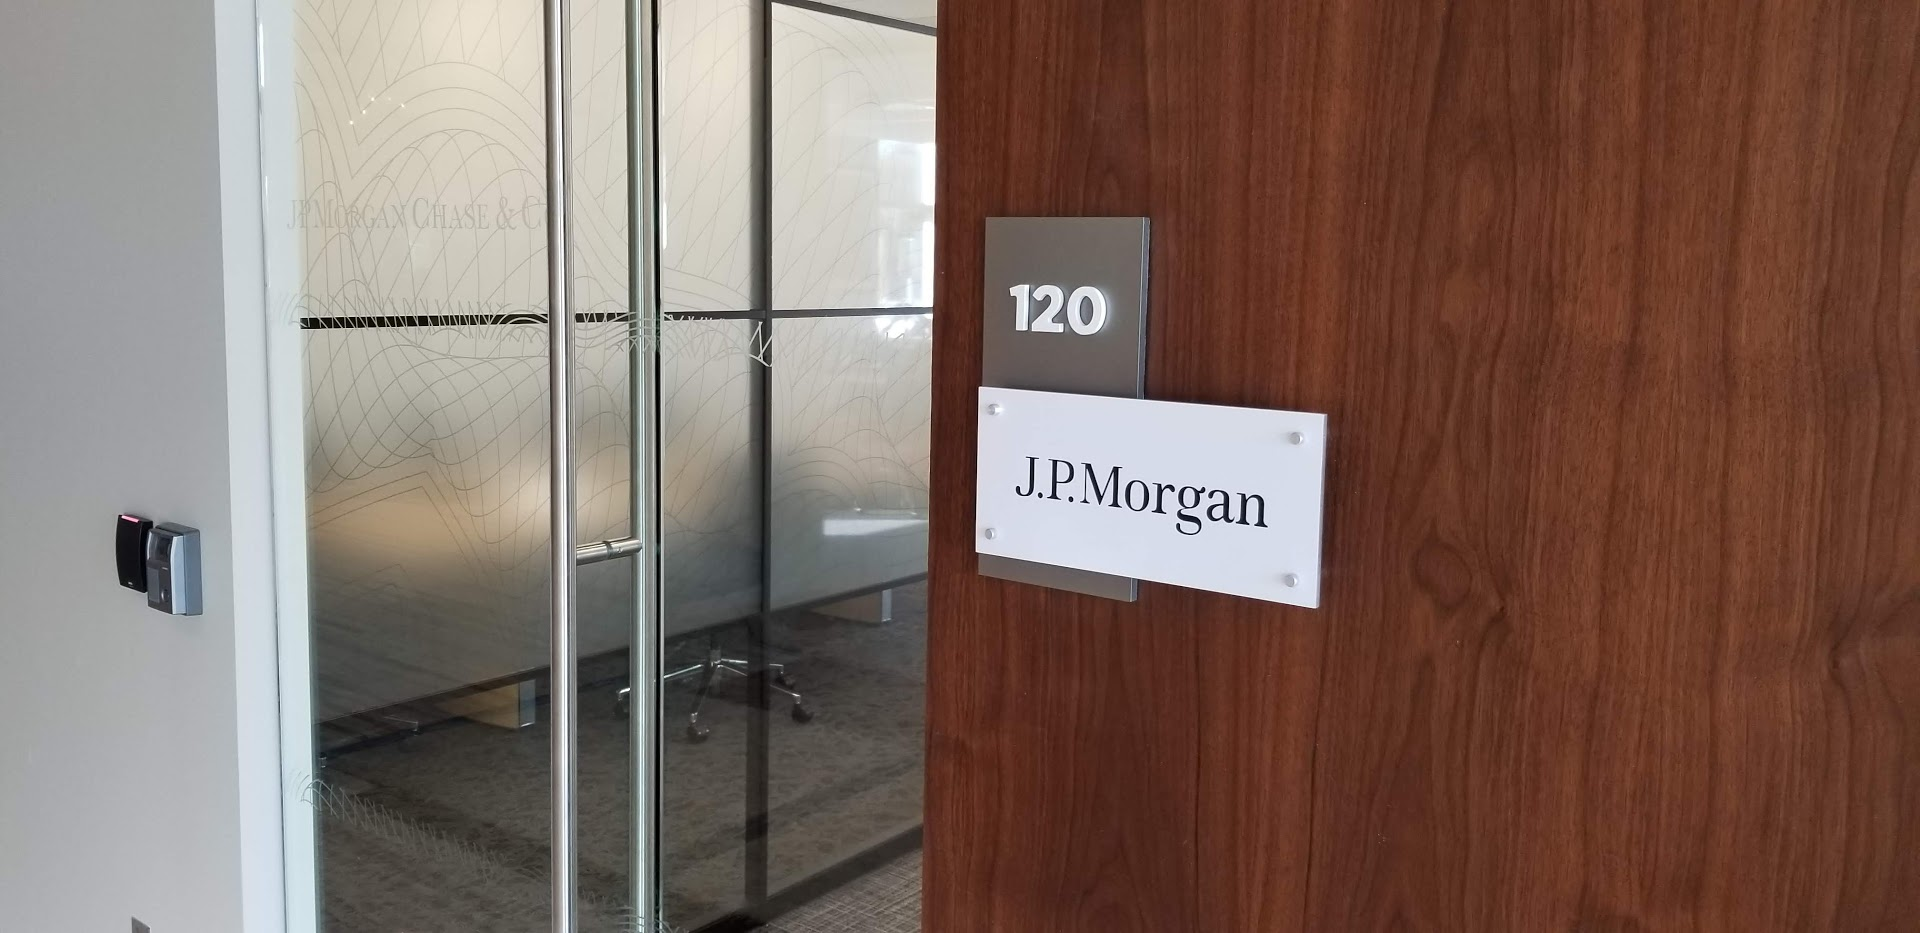 JP Morgan Chase Office in Omaha NE - HVAC Tenant Fit-out project